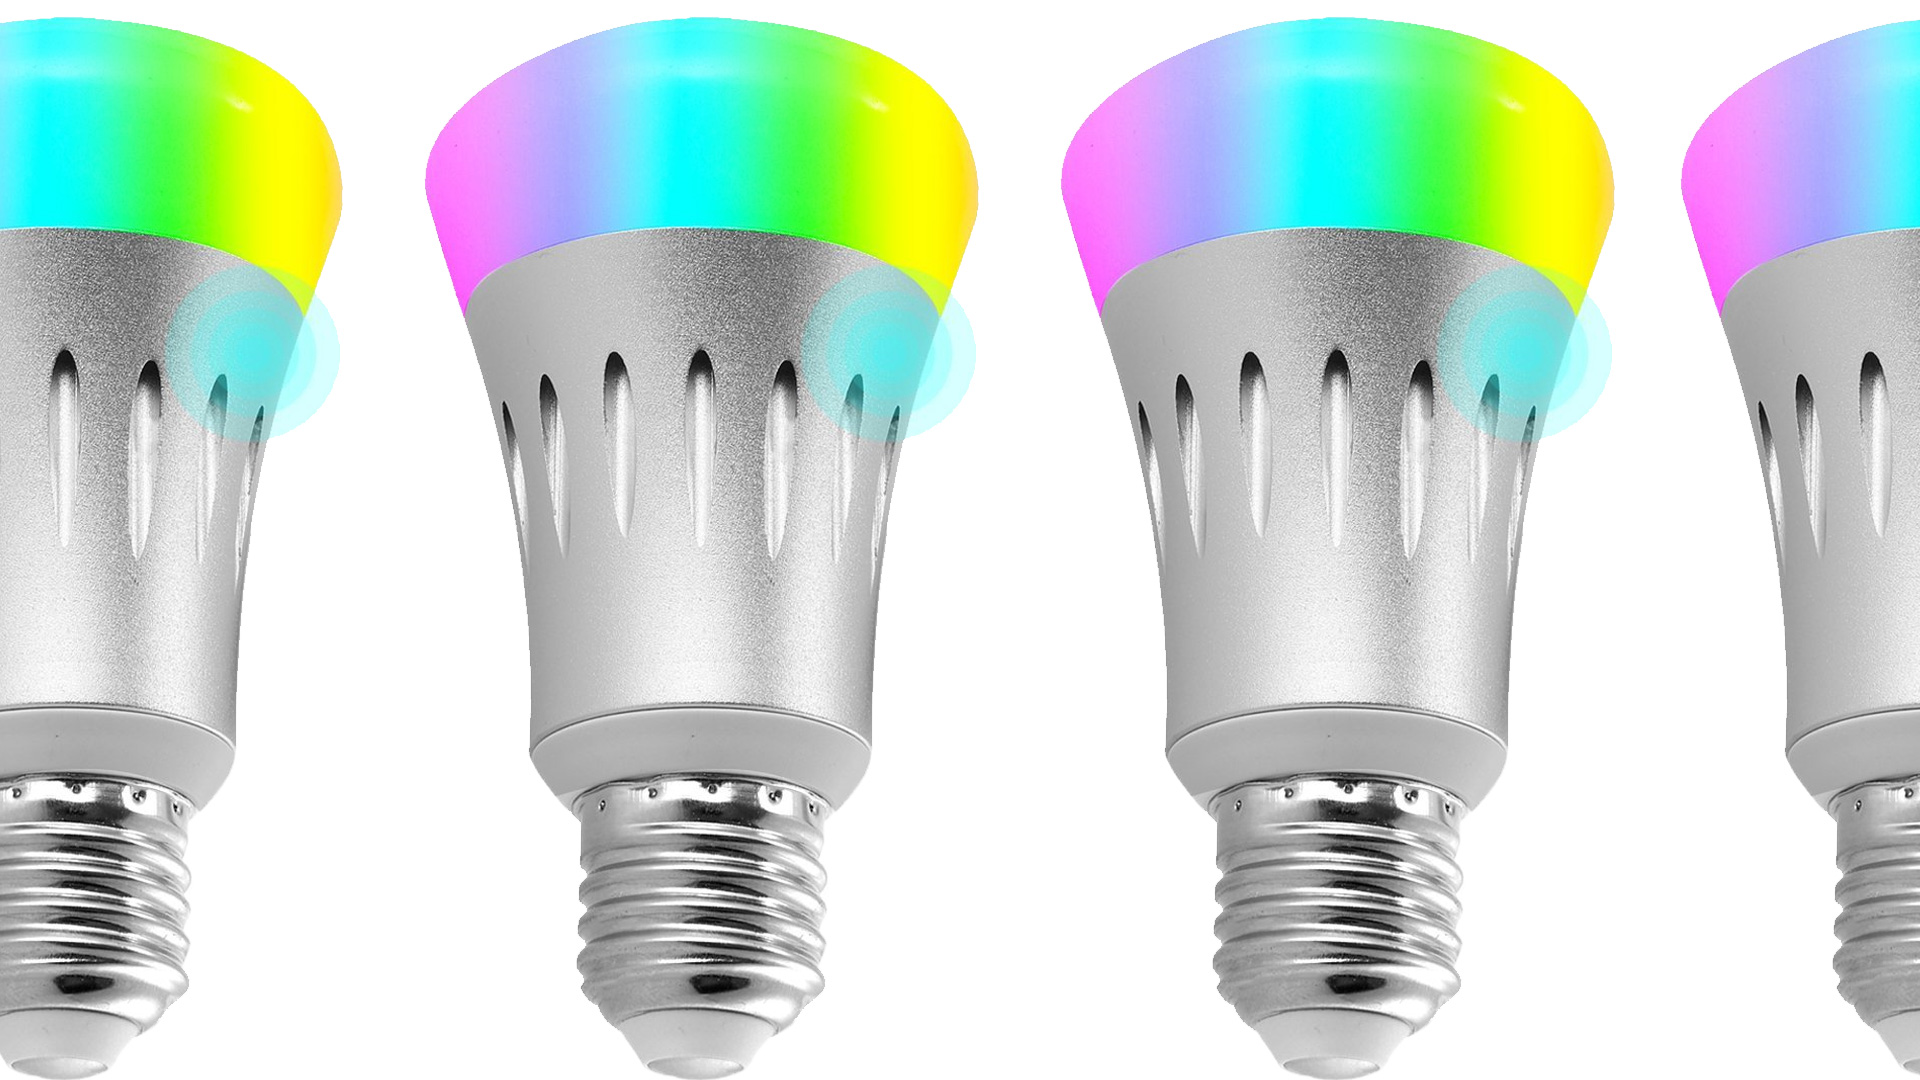 Add Alexa Compatible Rgb Lighting To Your Home For 15